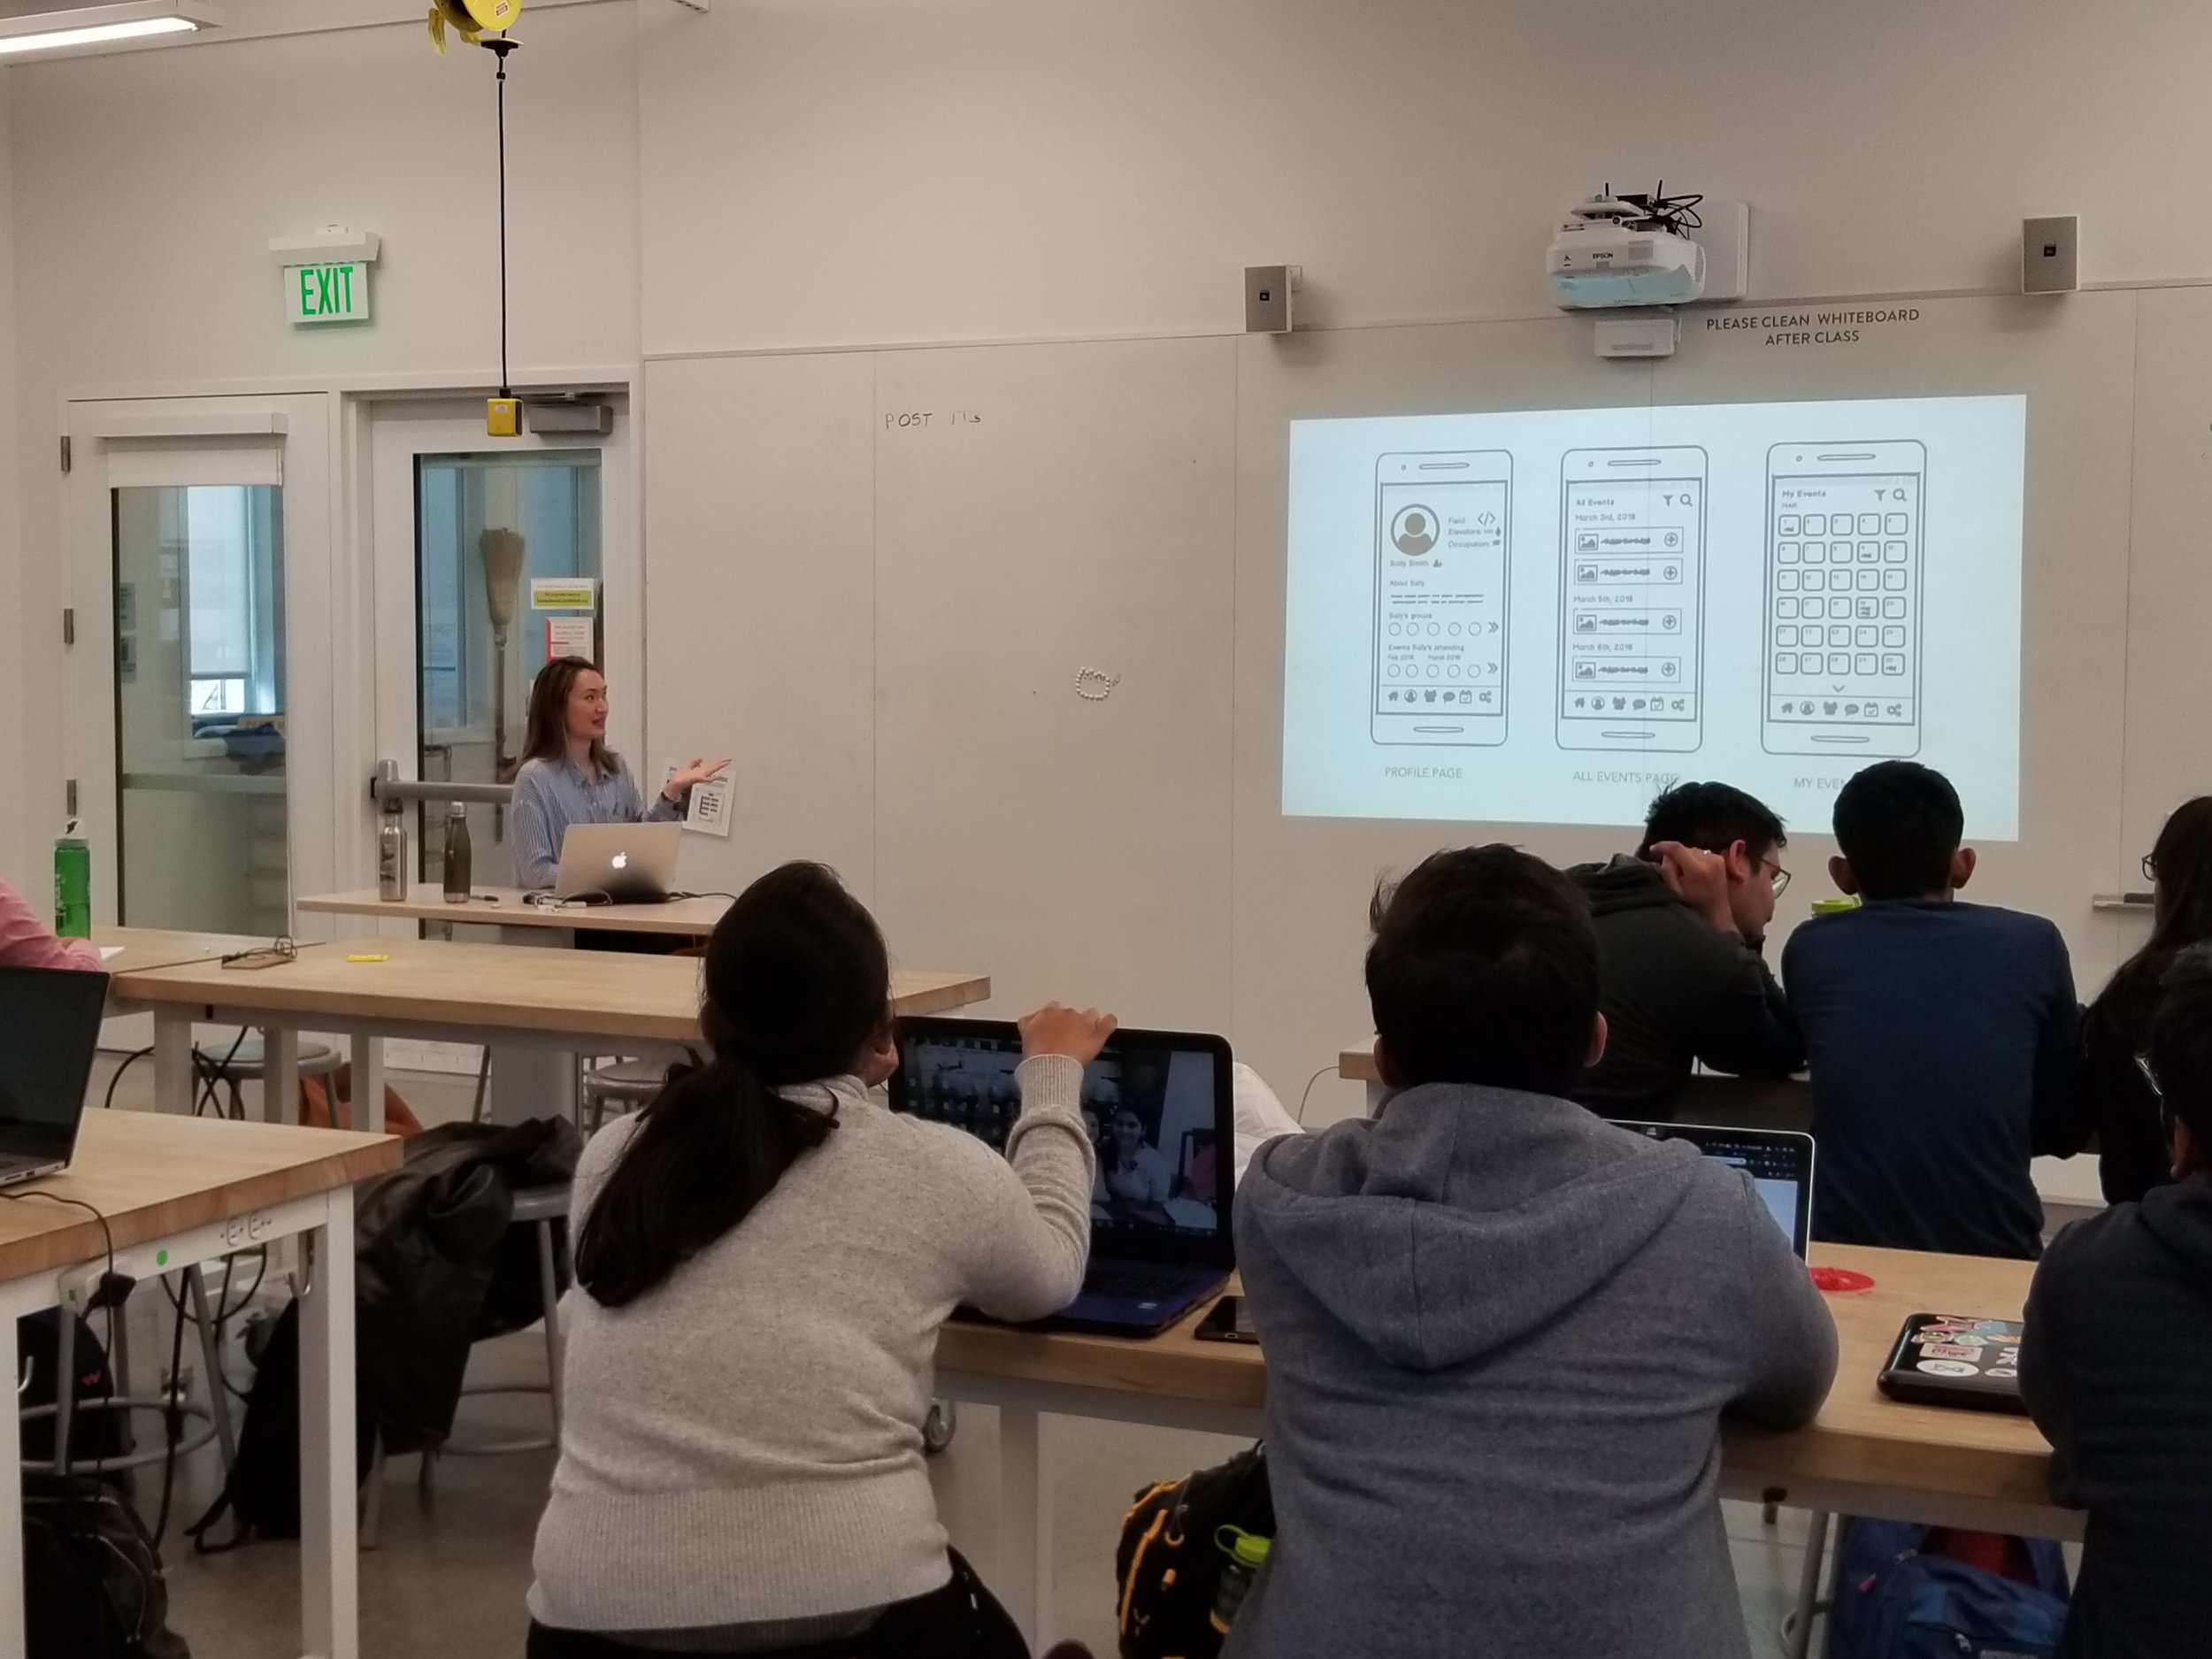 Spring 2019 Design Innovation 198 - I'm pictured teaching the class about UX research and design.